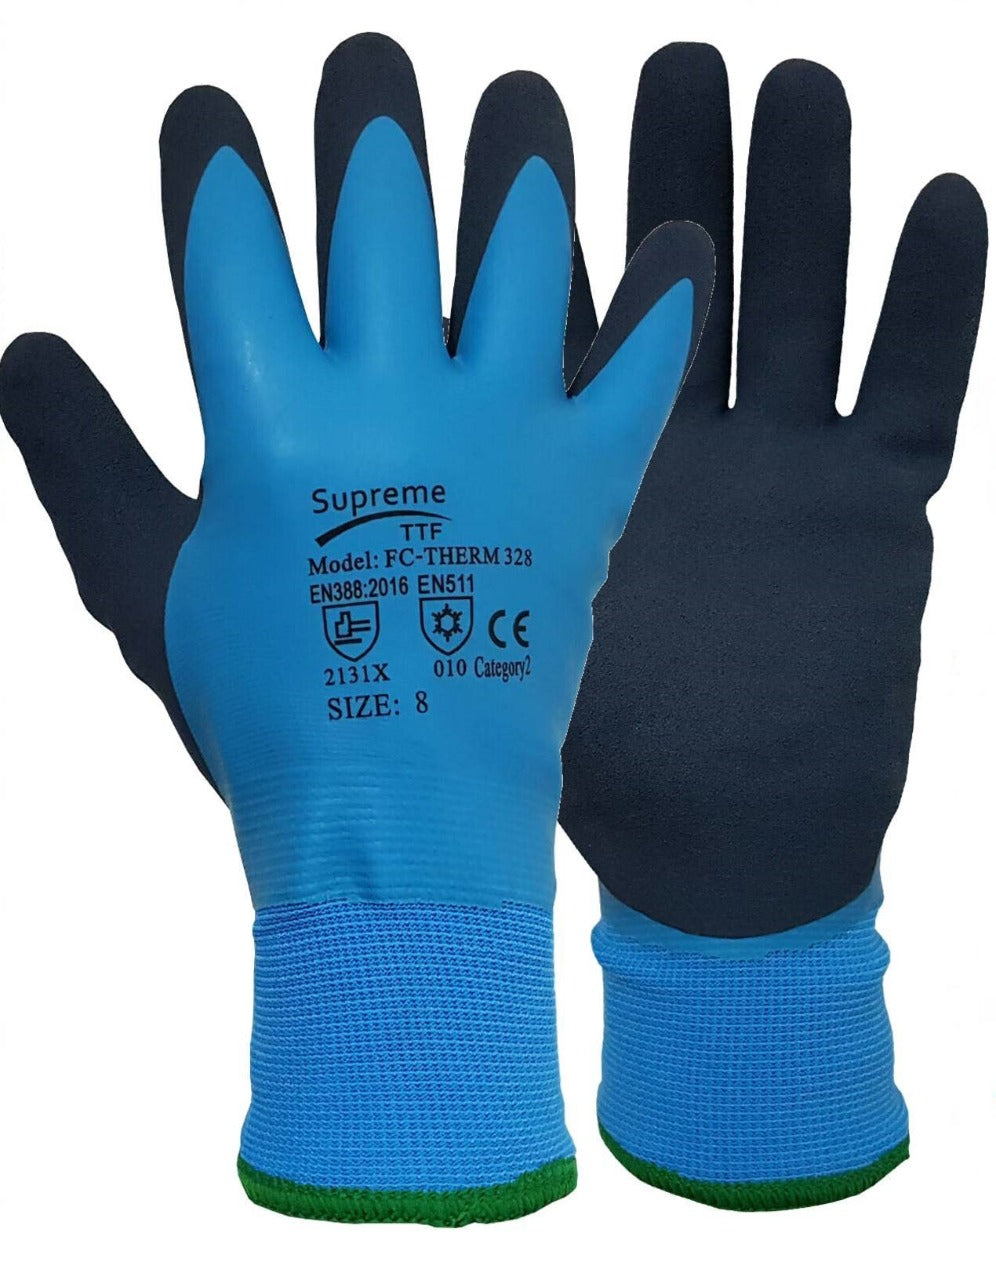 Thermal Insulated Winter Waterproof Gloves Outdoor Warm Thick Latex Work Glove